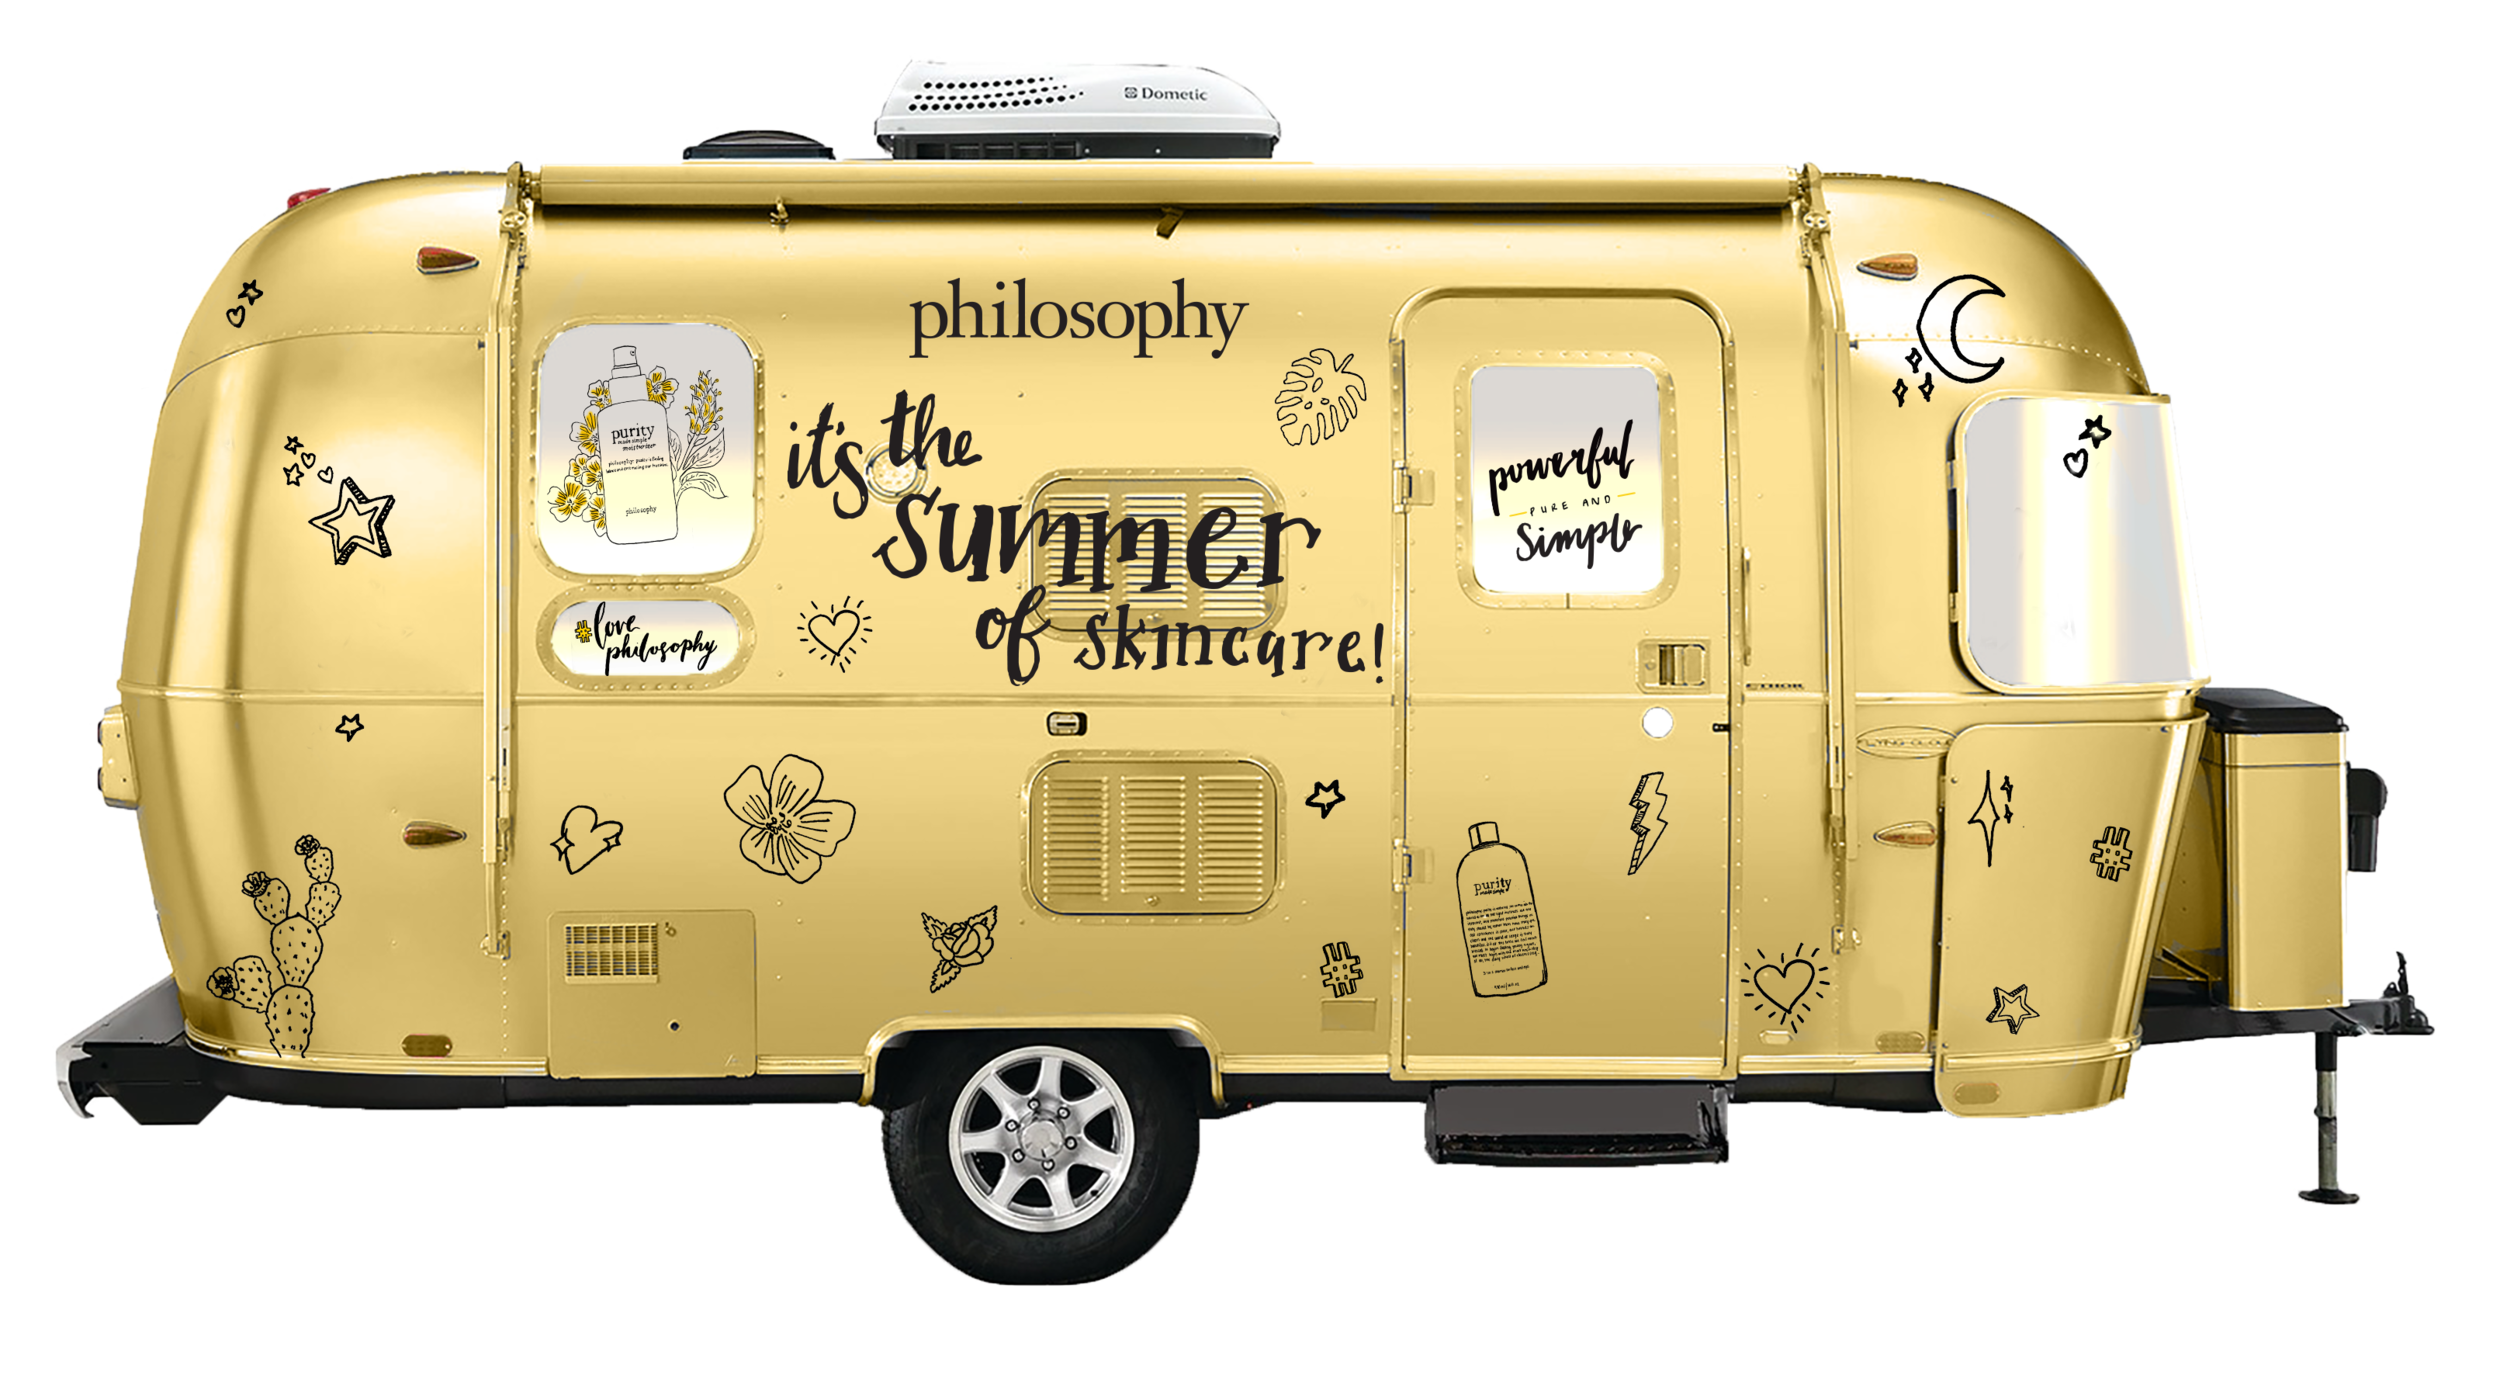 Puirty_Airstream_right-side_v03.png